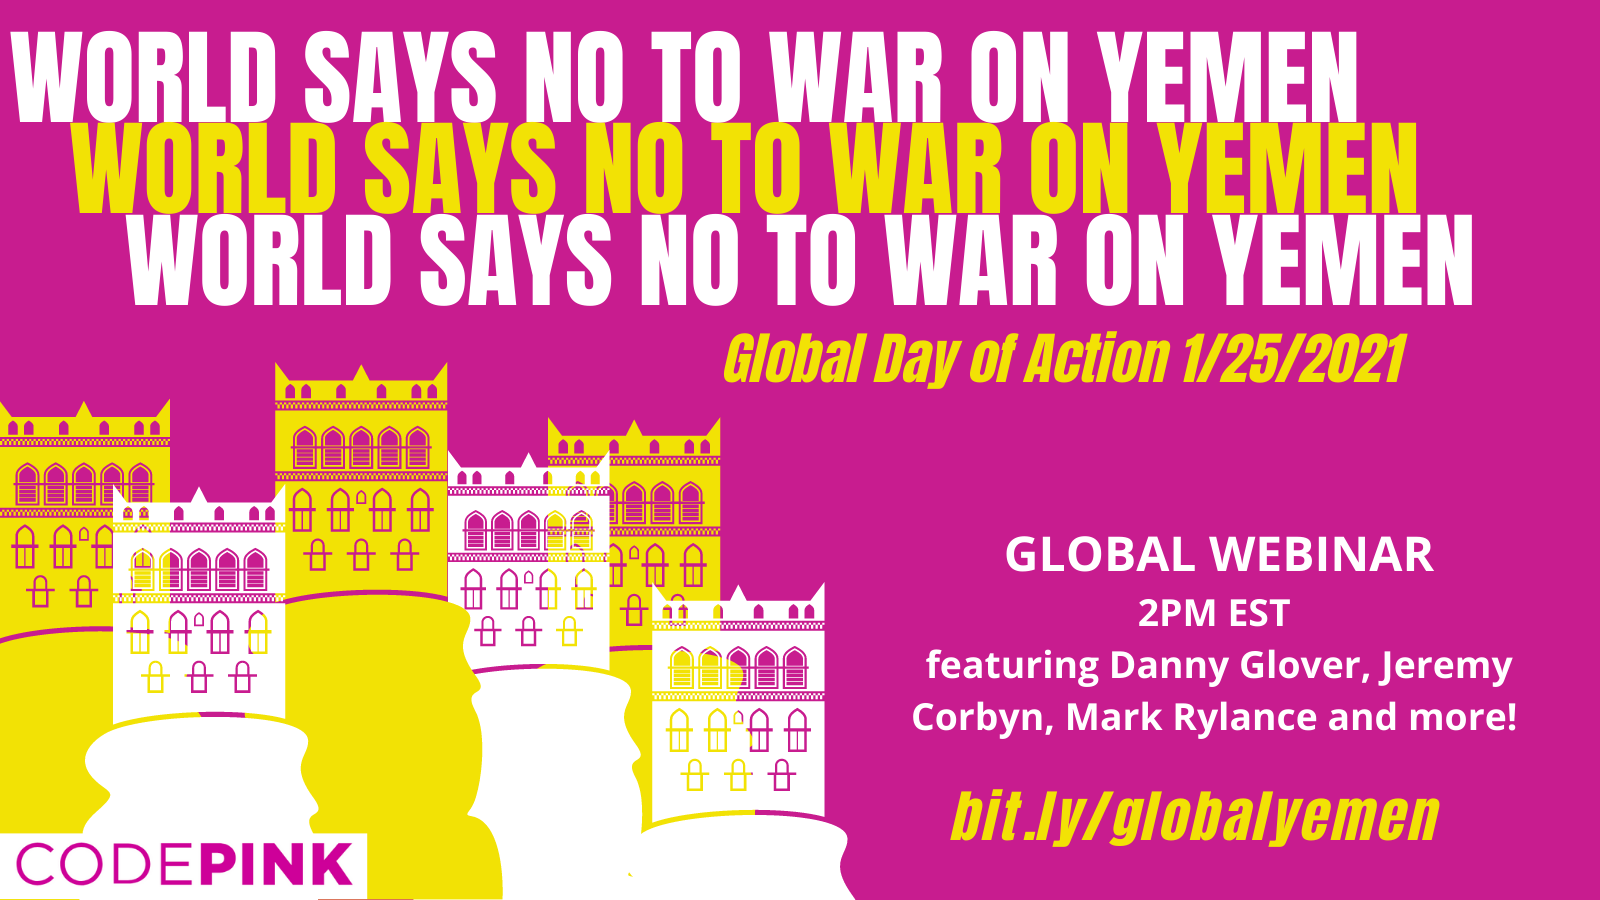 World Says No to War on Yemen Global Webinar ft. Danny Glover, Jeremy Corbyn and more!